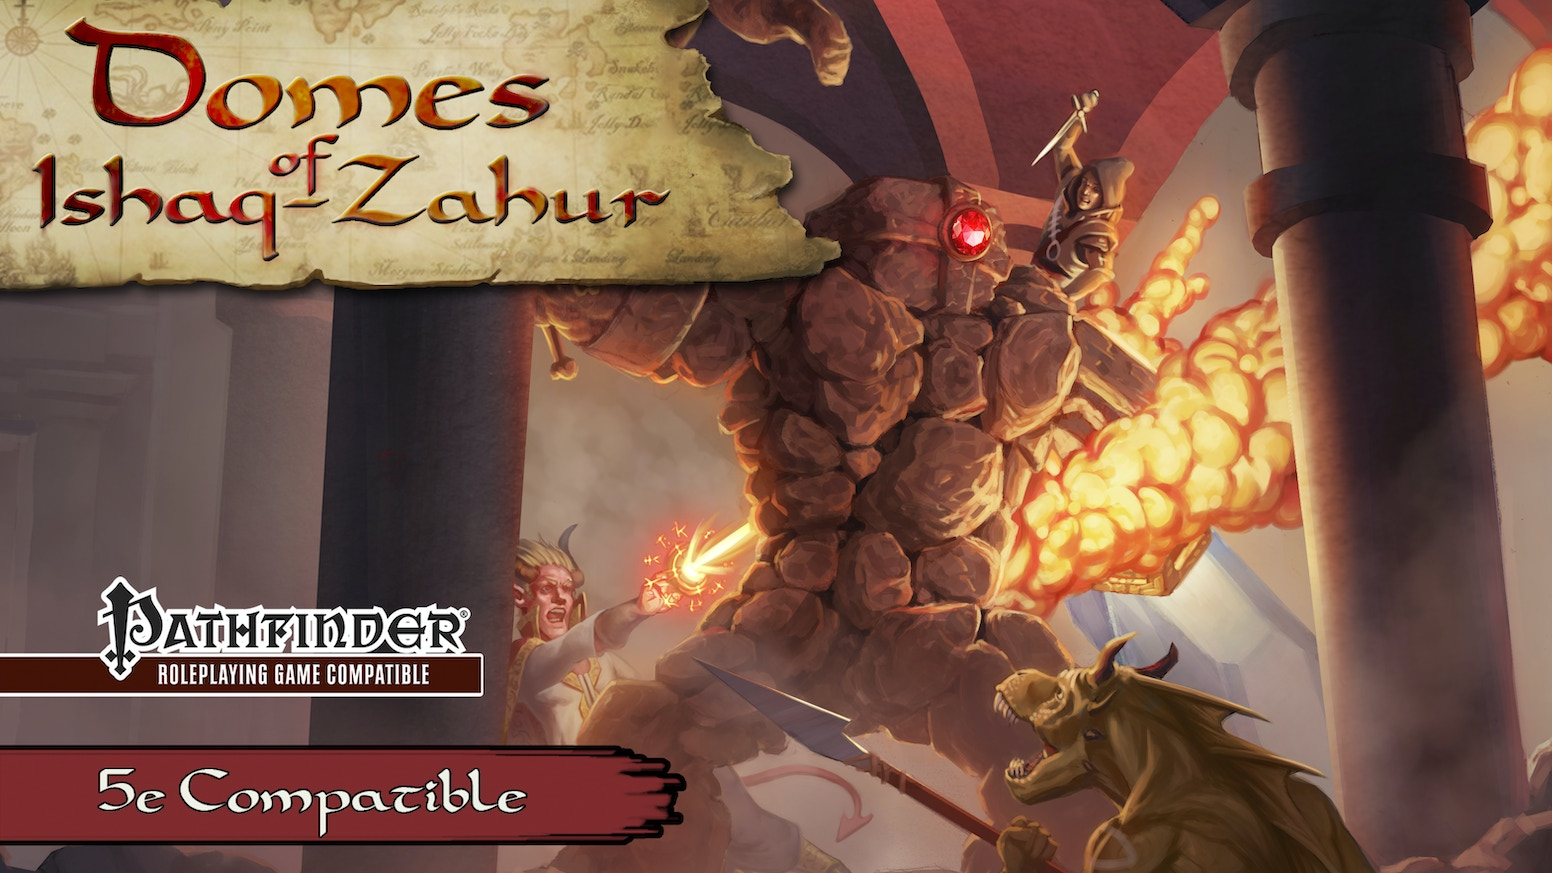 A classic adventure dungeon setting with devilish puzzles, challenging encounters, and dynamic story for the core tabletop RPG systems.